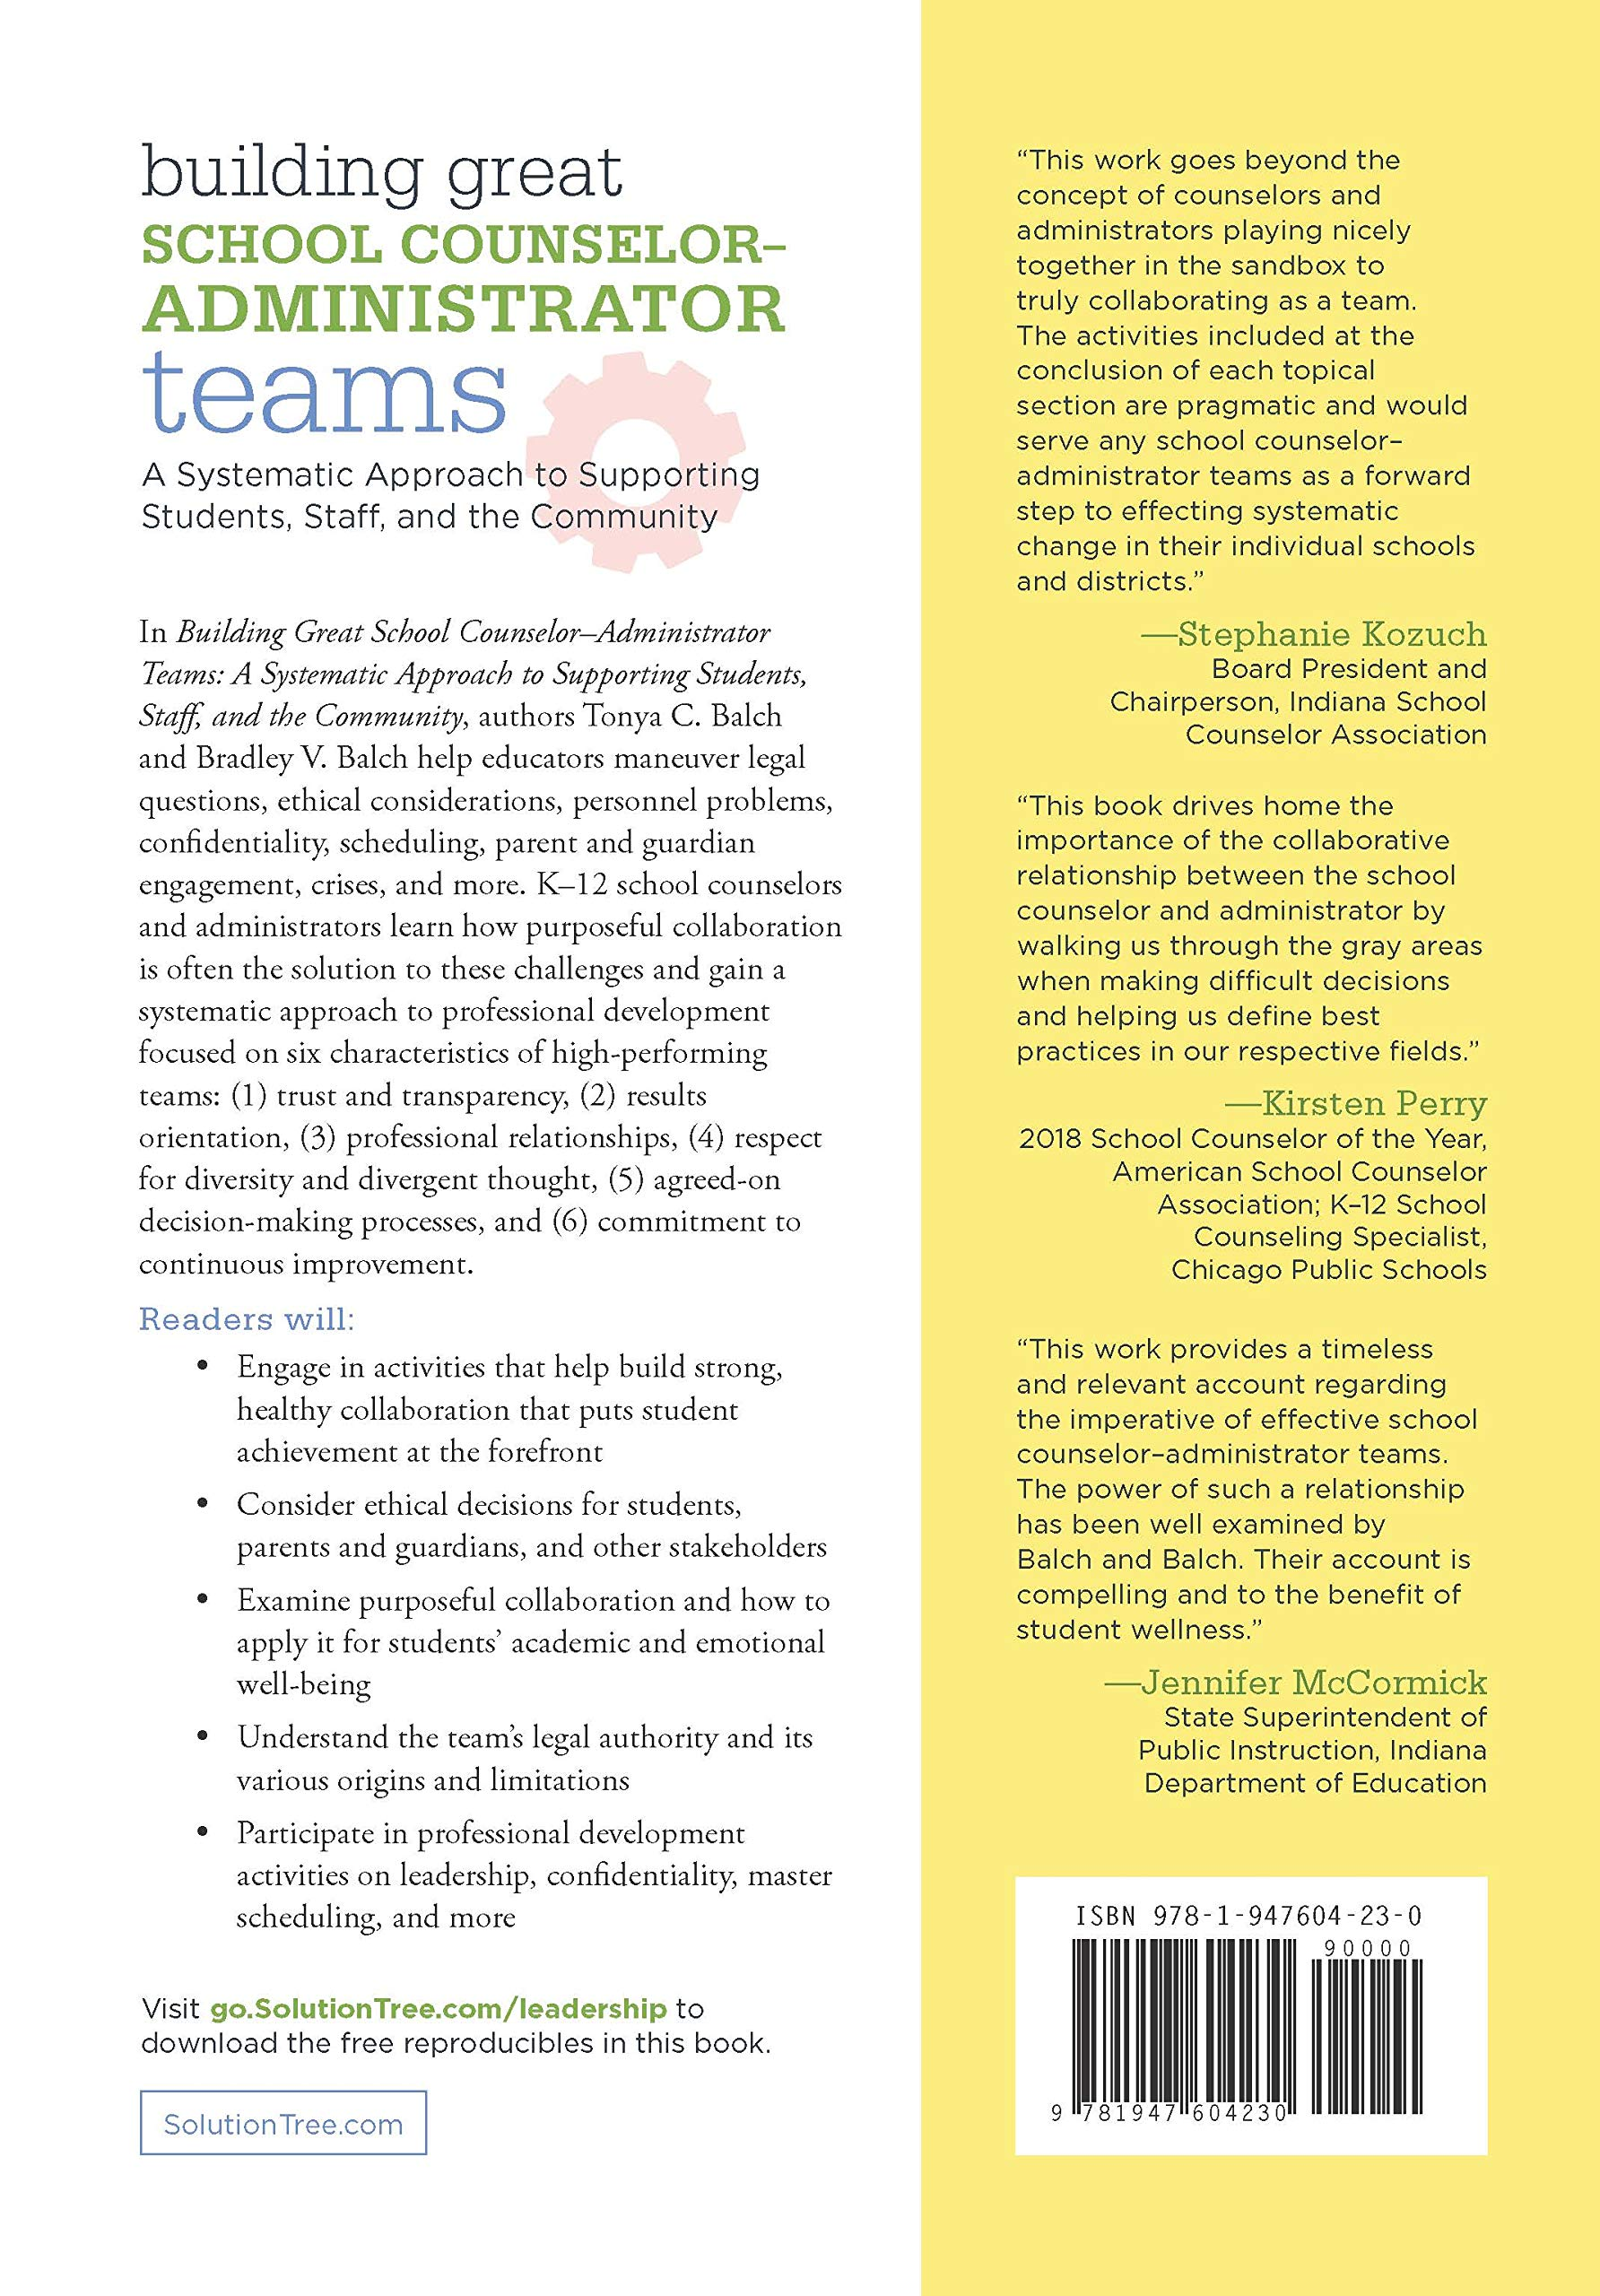 Building Great School Counselor-Administrator Teams: A